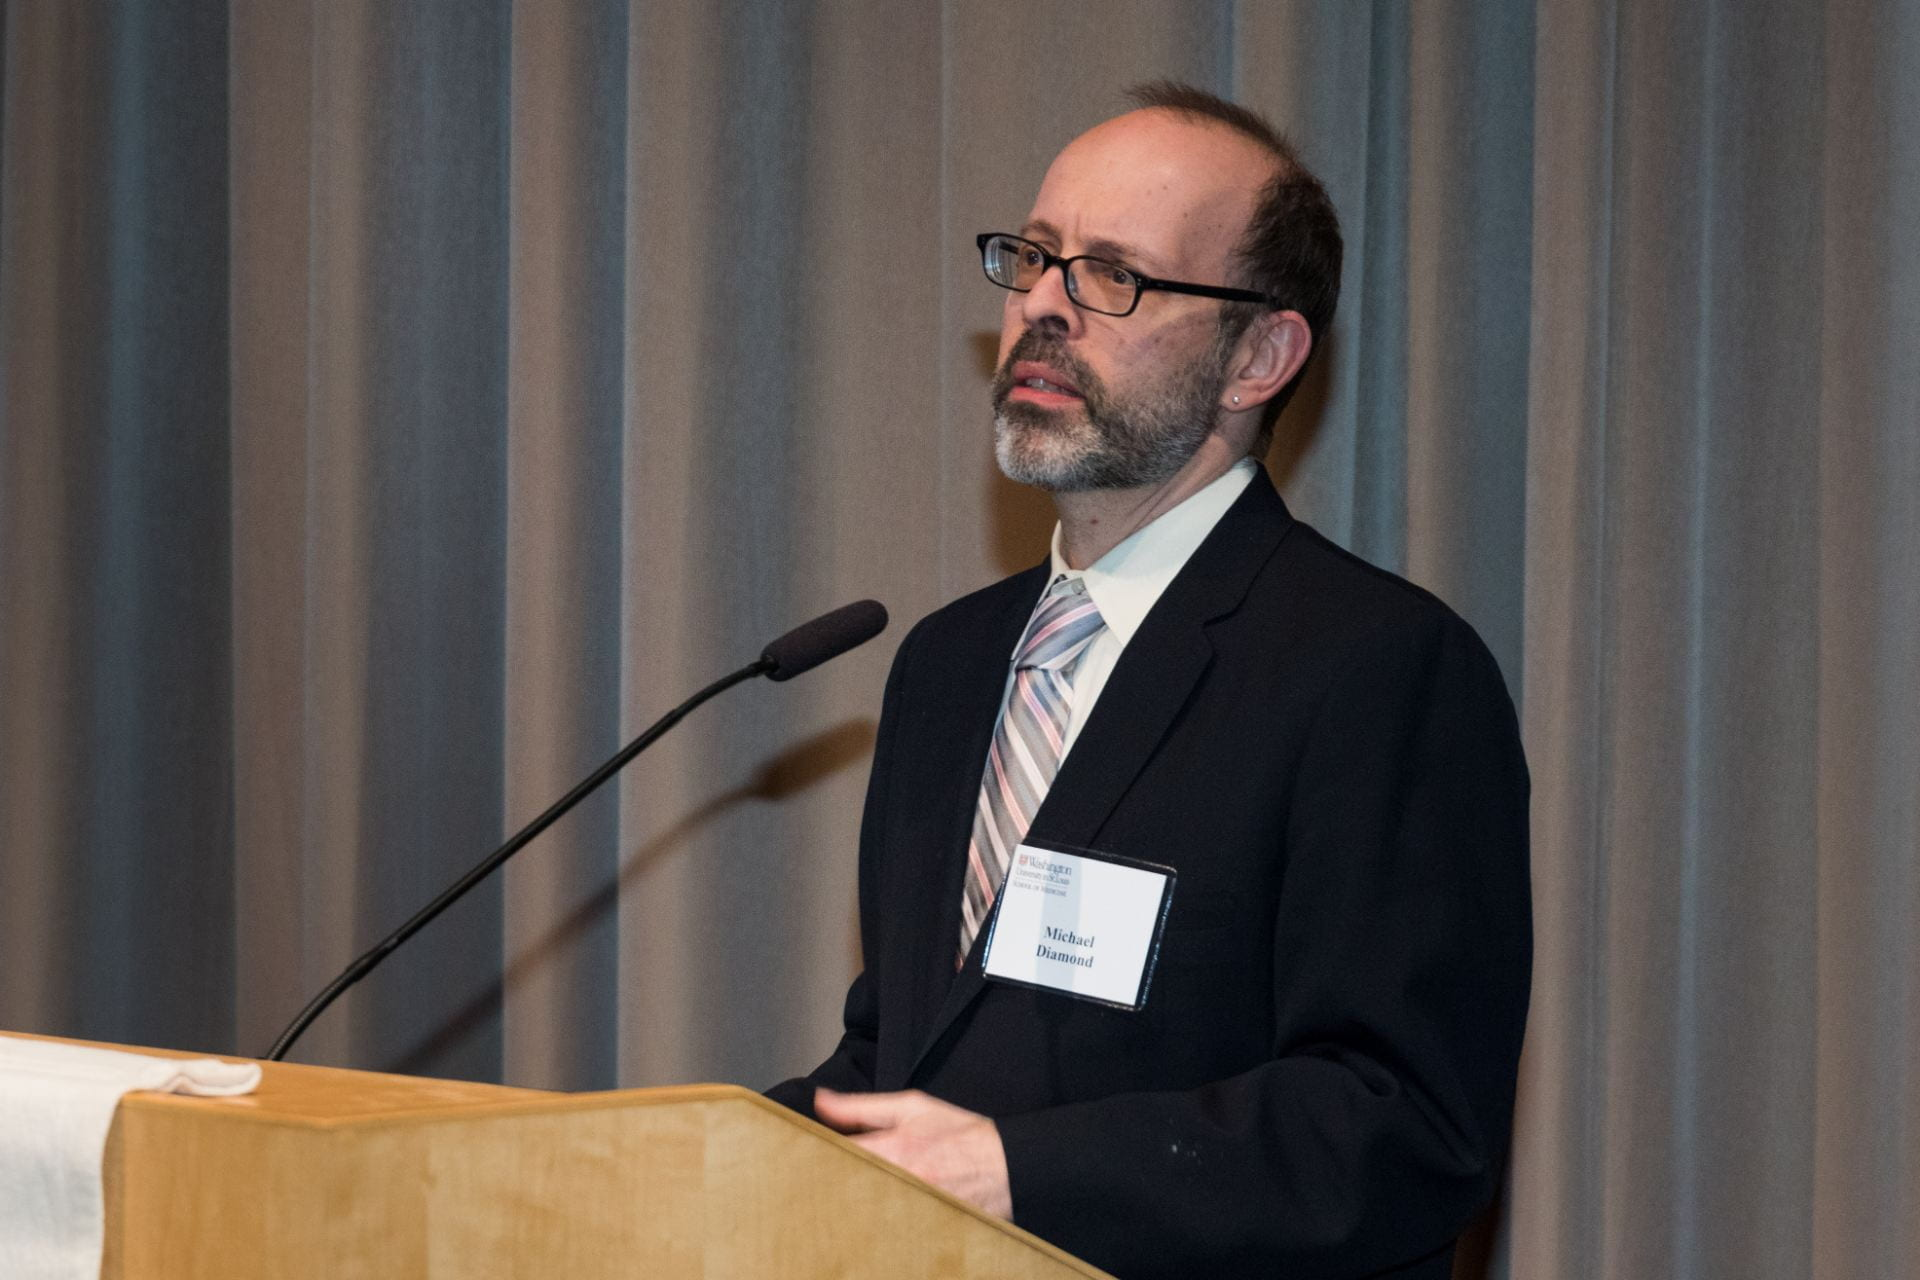 Associate Director Dr. Michael Diamond explores Discoveries in Basic Biology of Infectious Diseases and Their Rapid Transition to Drug and Vaccine.